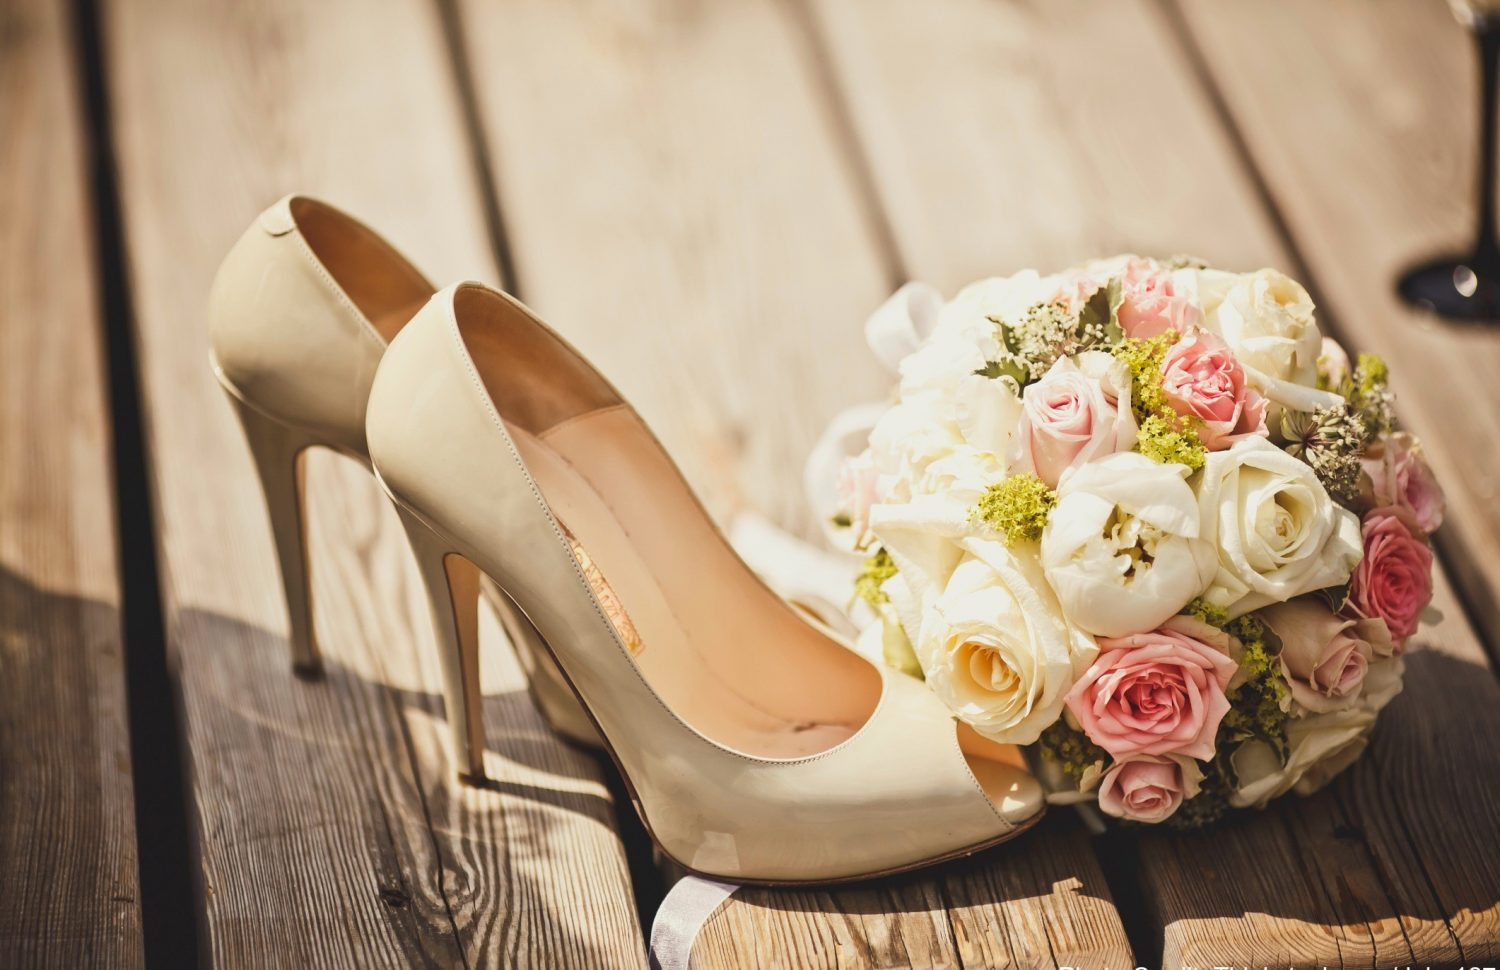 wedding shoes and floral bouqet